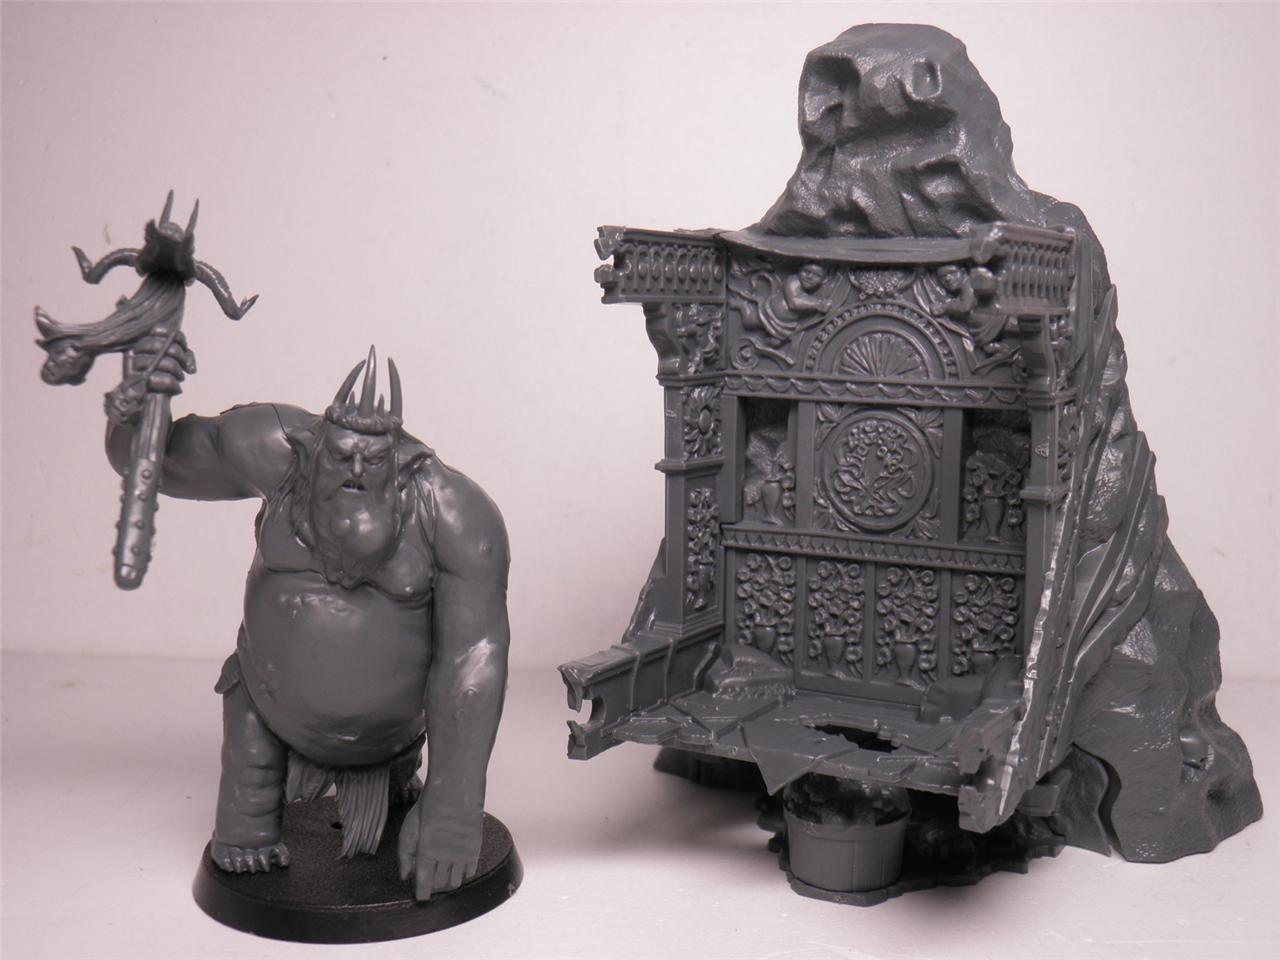 Goblin-King-Throne-New-Unassembled-The-Hobbit-Escape-from-Goblin-Town-LOTR